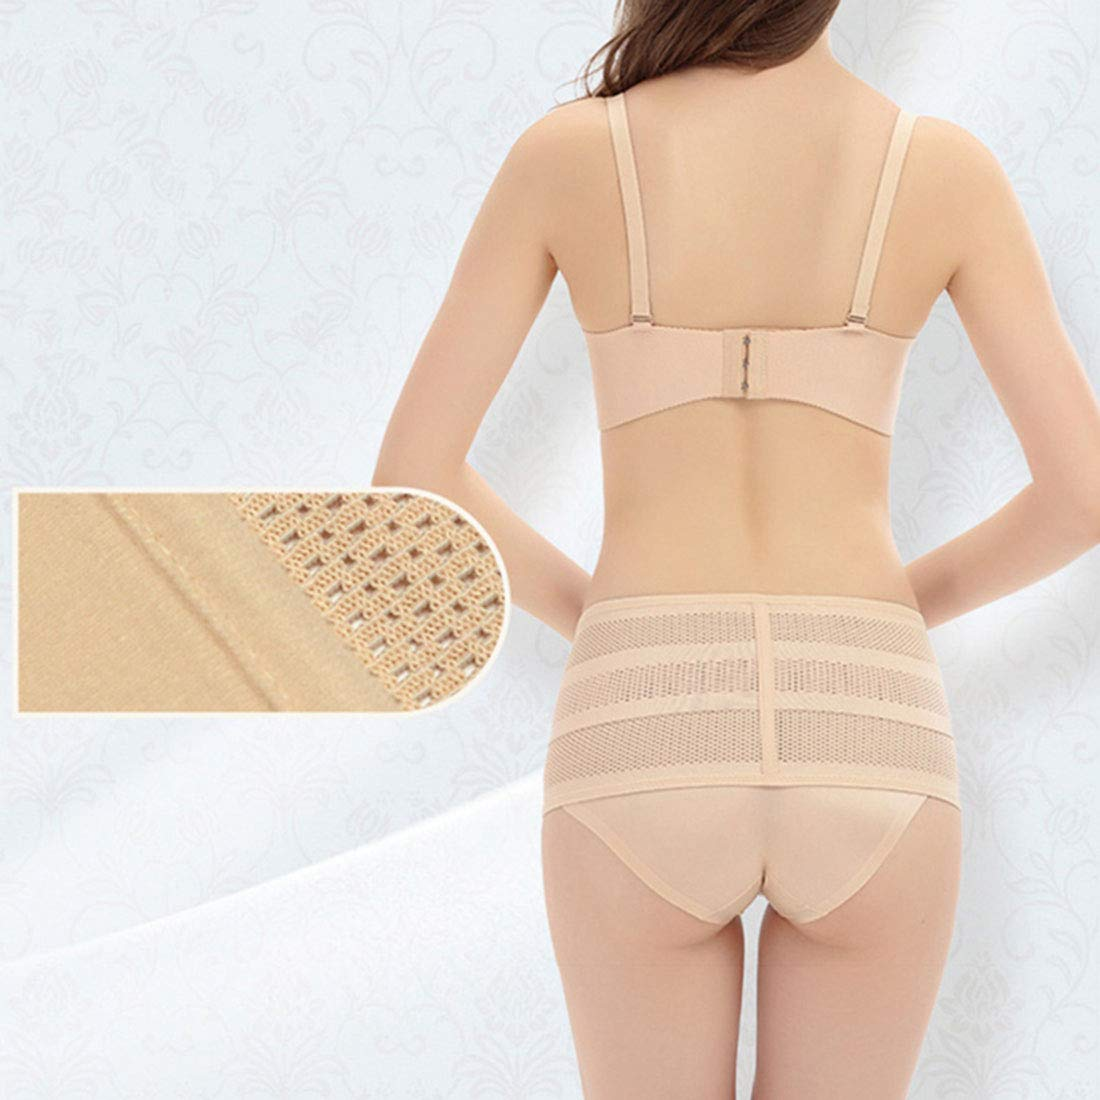 Surrui Women Lace Pelvic Correction Support Belt Adjustable Control Panties Lift Hip Postpartum Recovery Boby Shaping